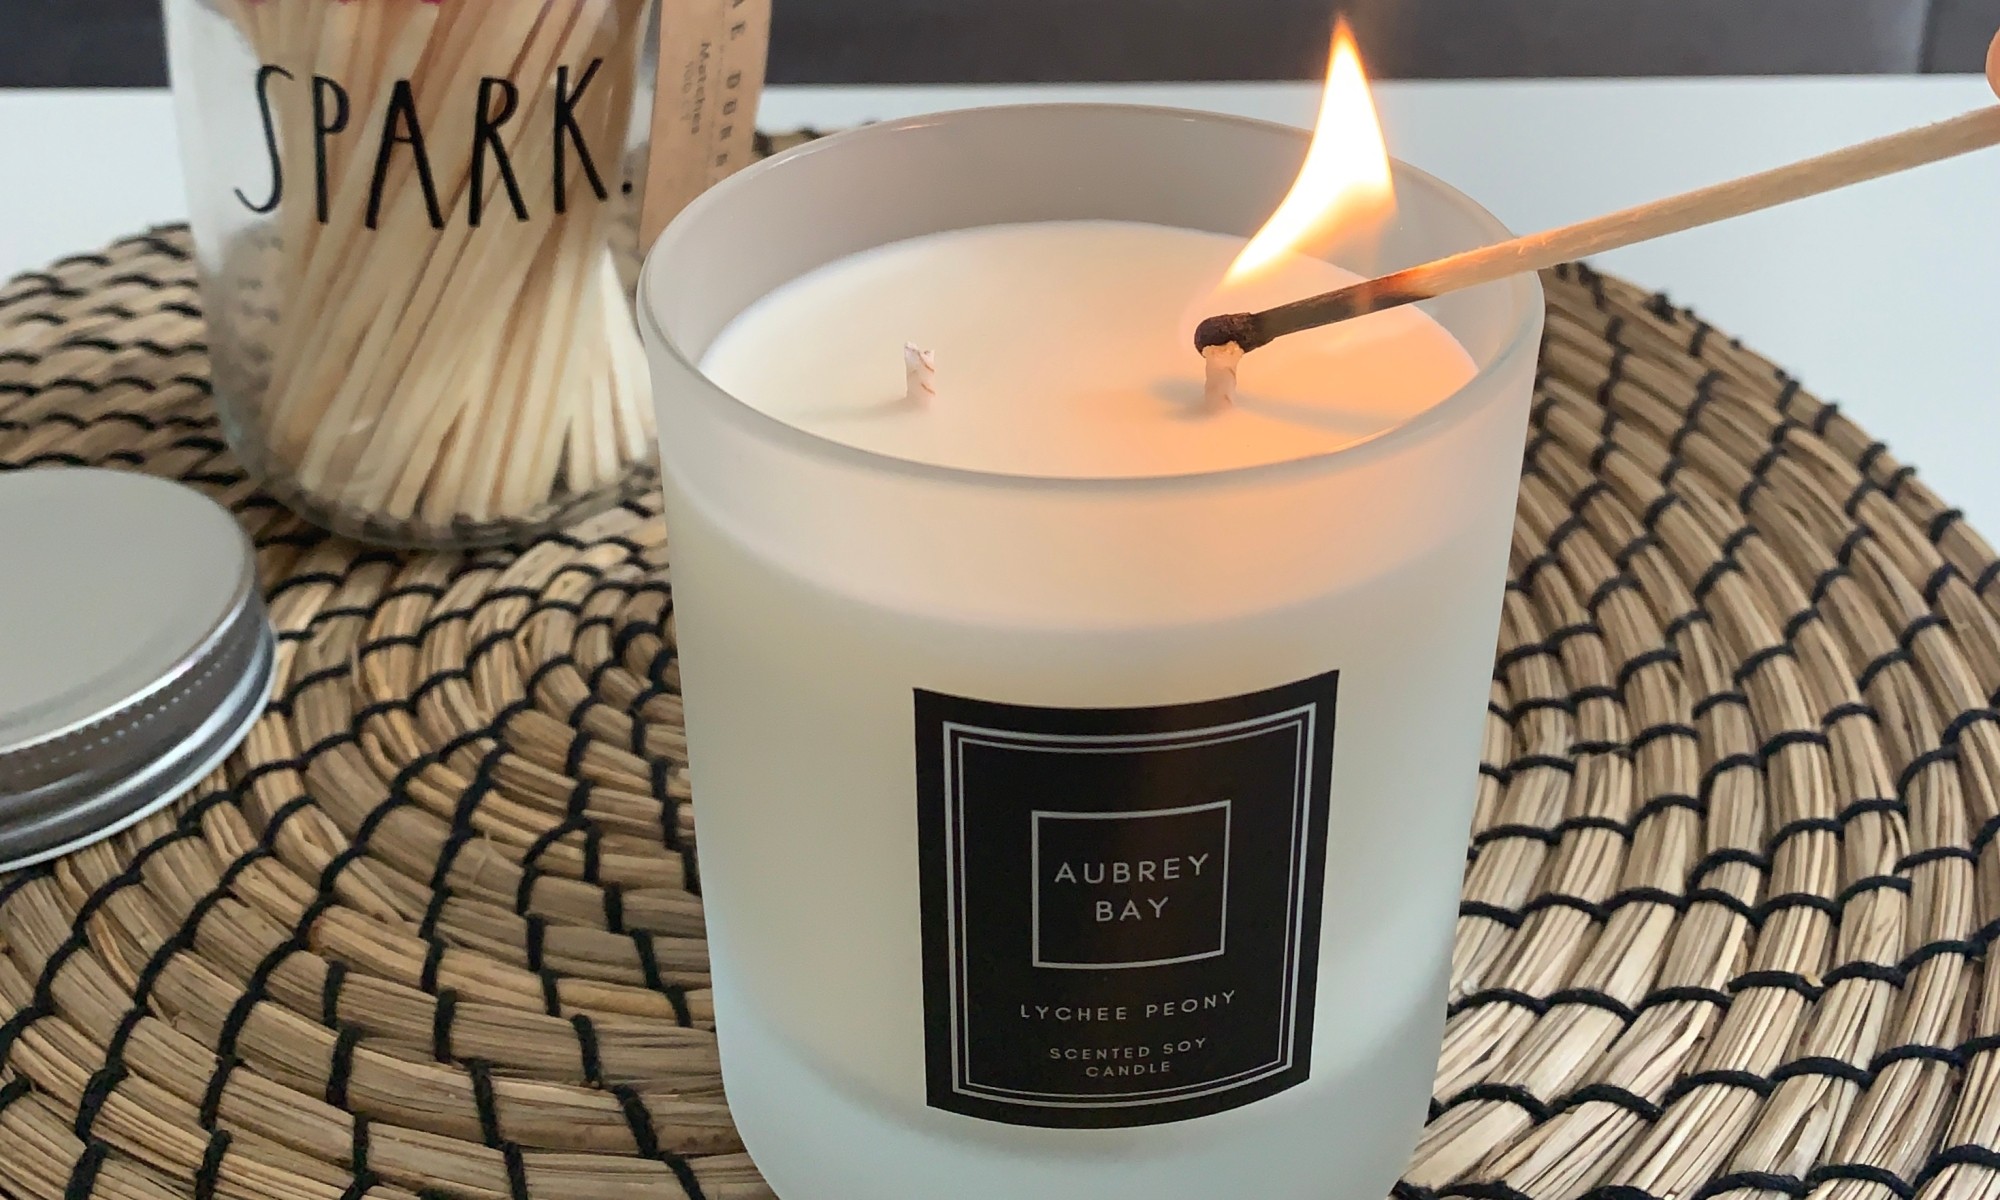 Rachel recommends Aubrey Bay candle review